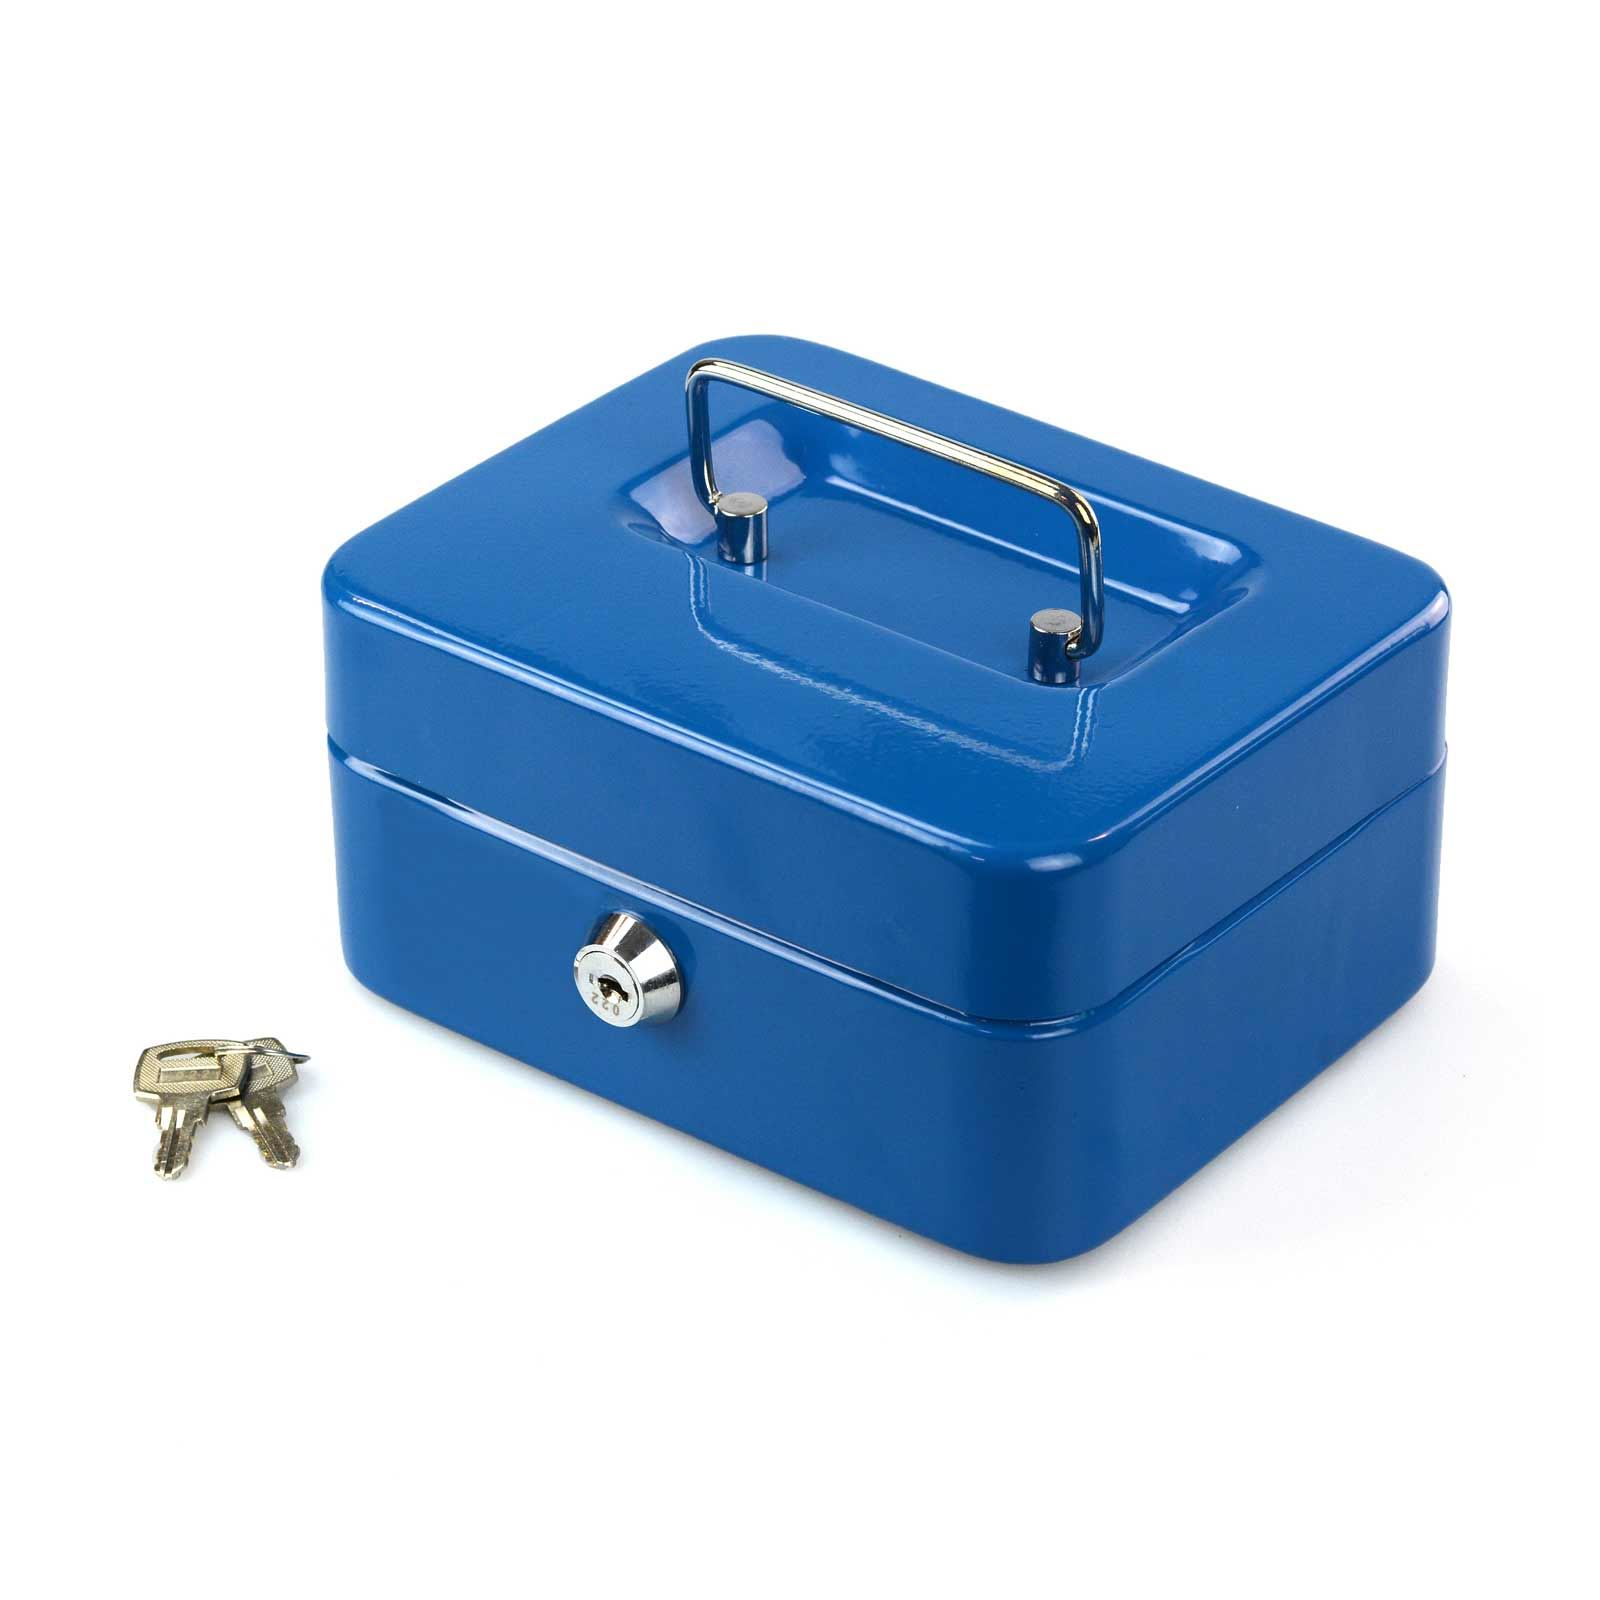 Petty-Cash-Safety-Deposit-Box-Metal-Security-Steel-Money-Bank-Coin-Tray-holder thumbnail 7